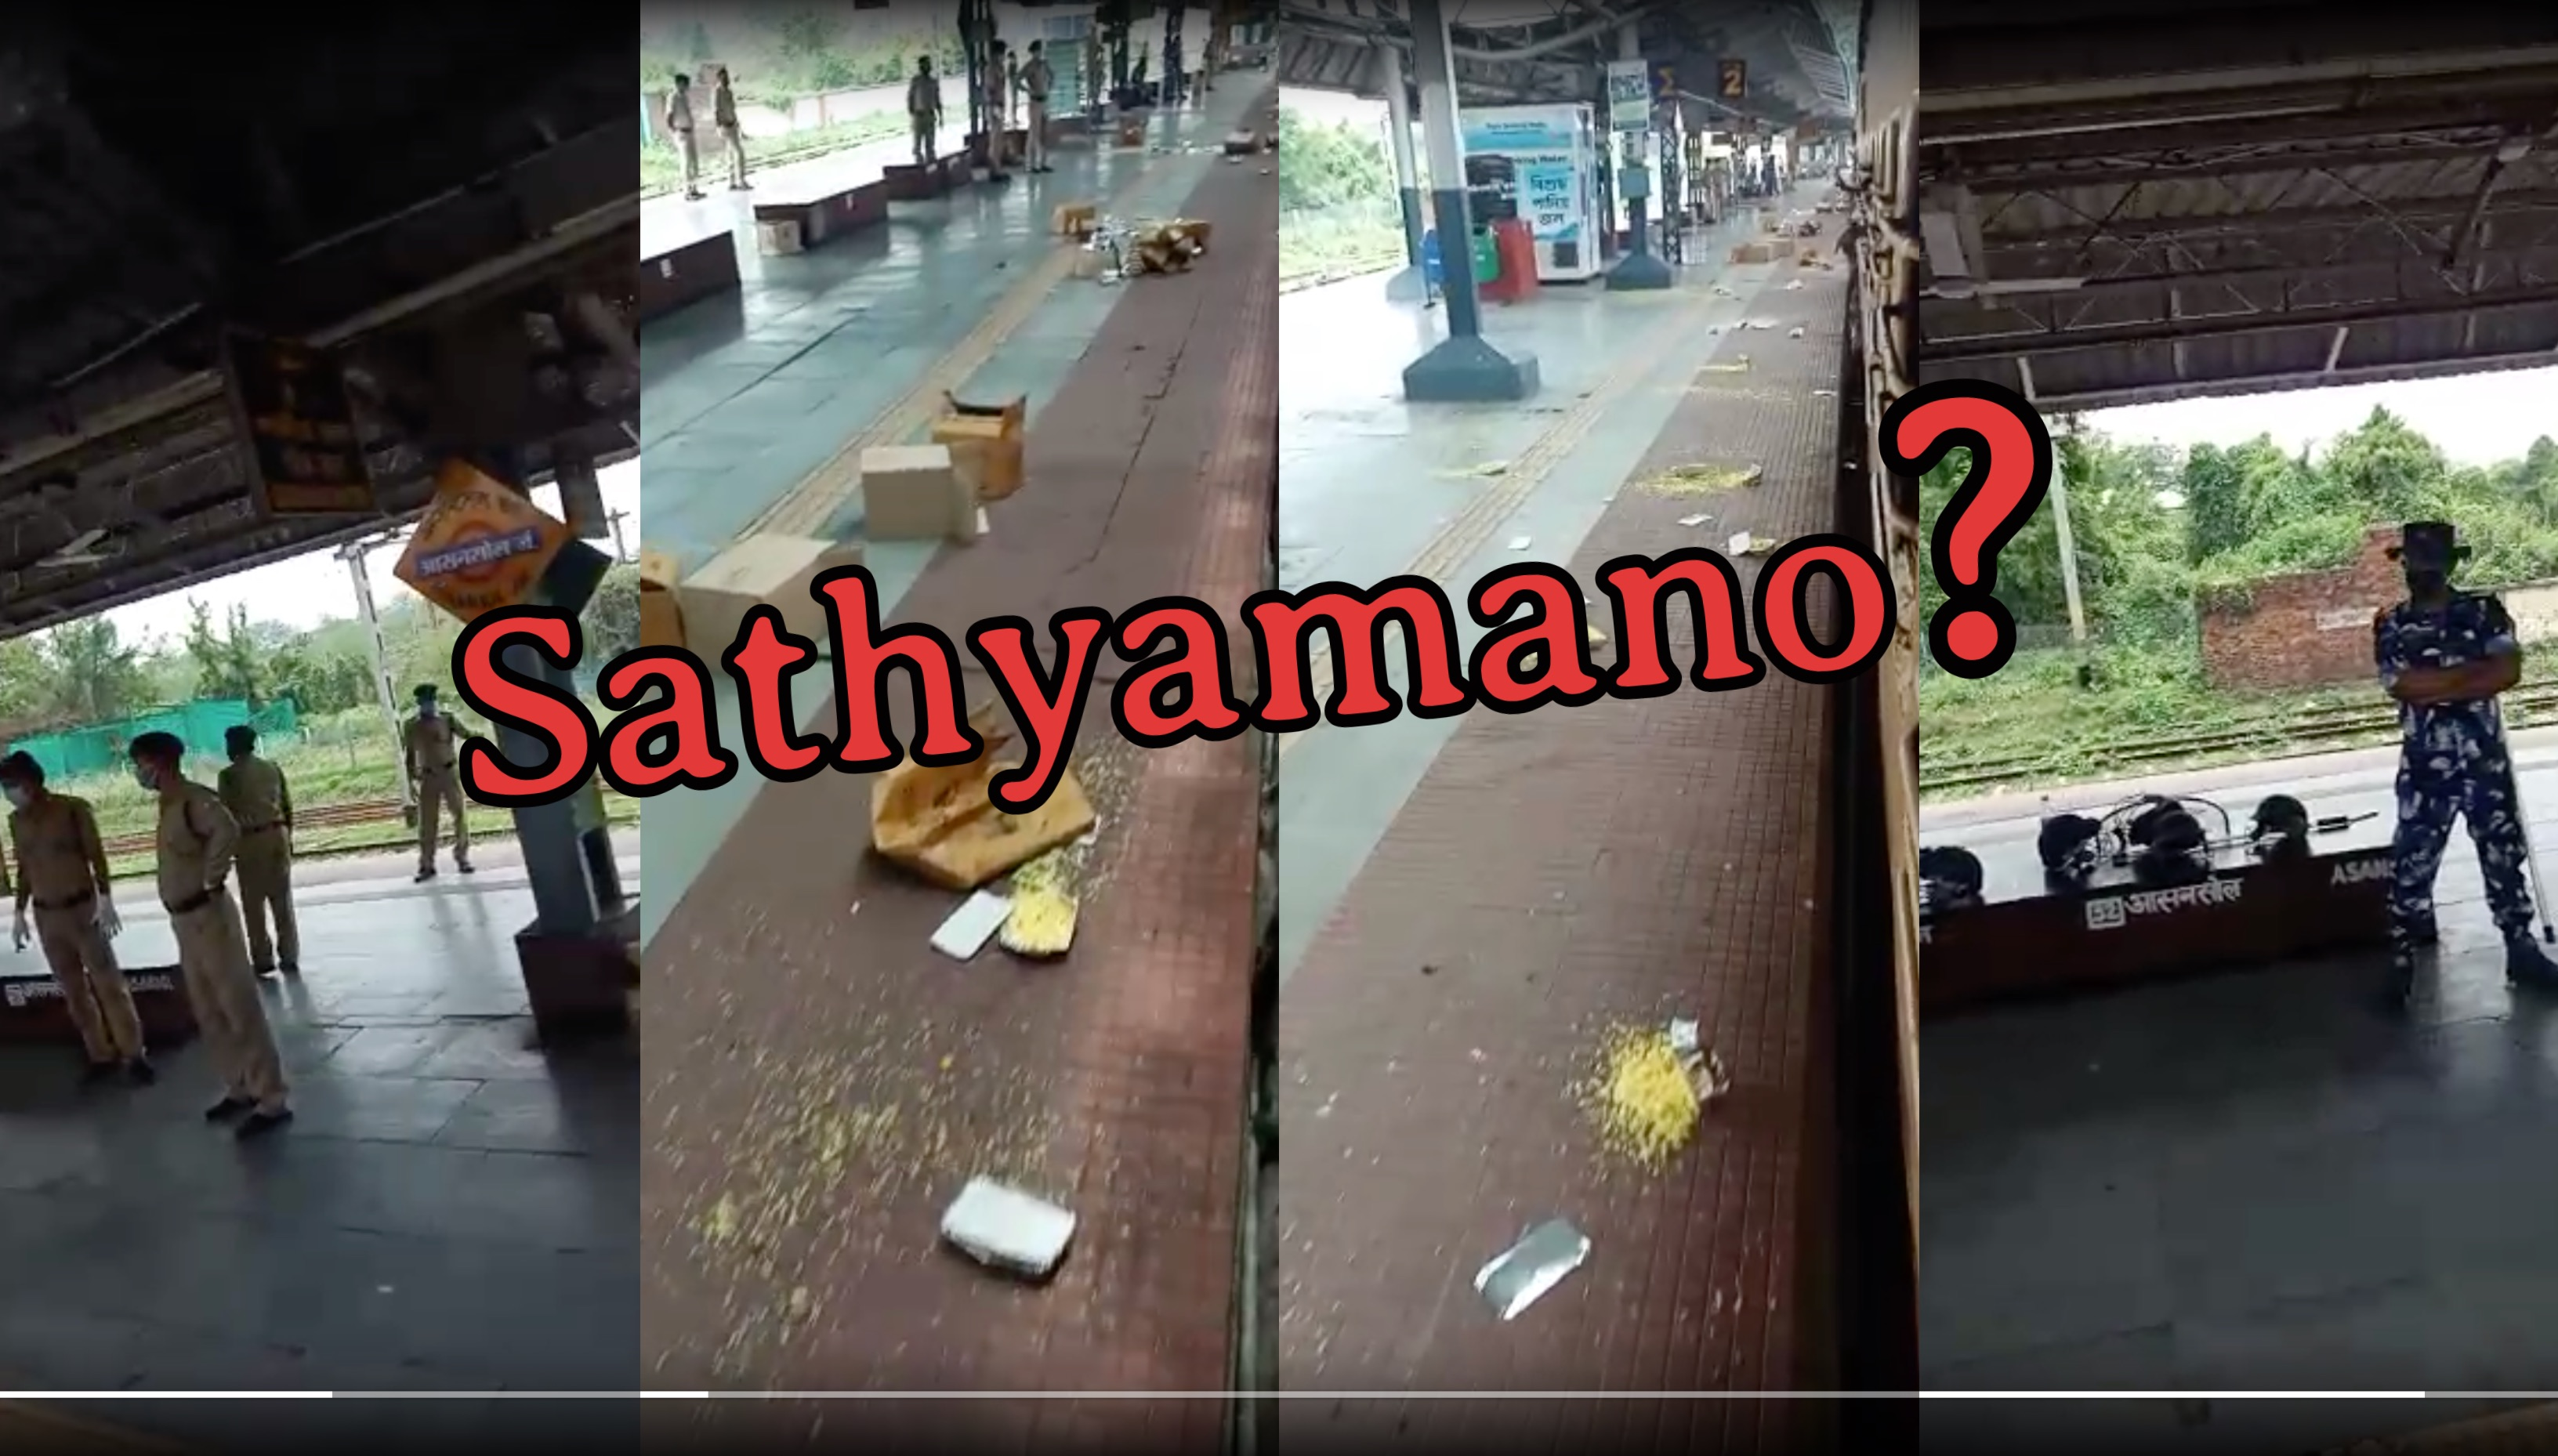 Whats the truth?: Guest workers on train from Kerala throwing food on Railway platform